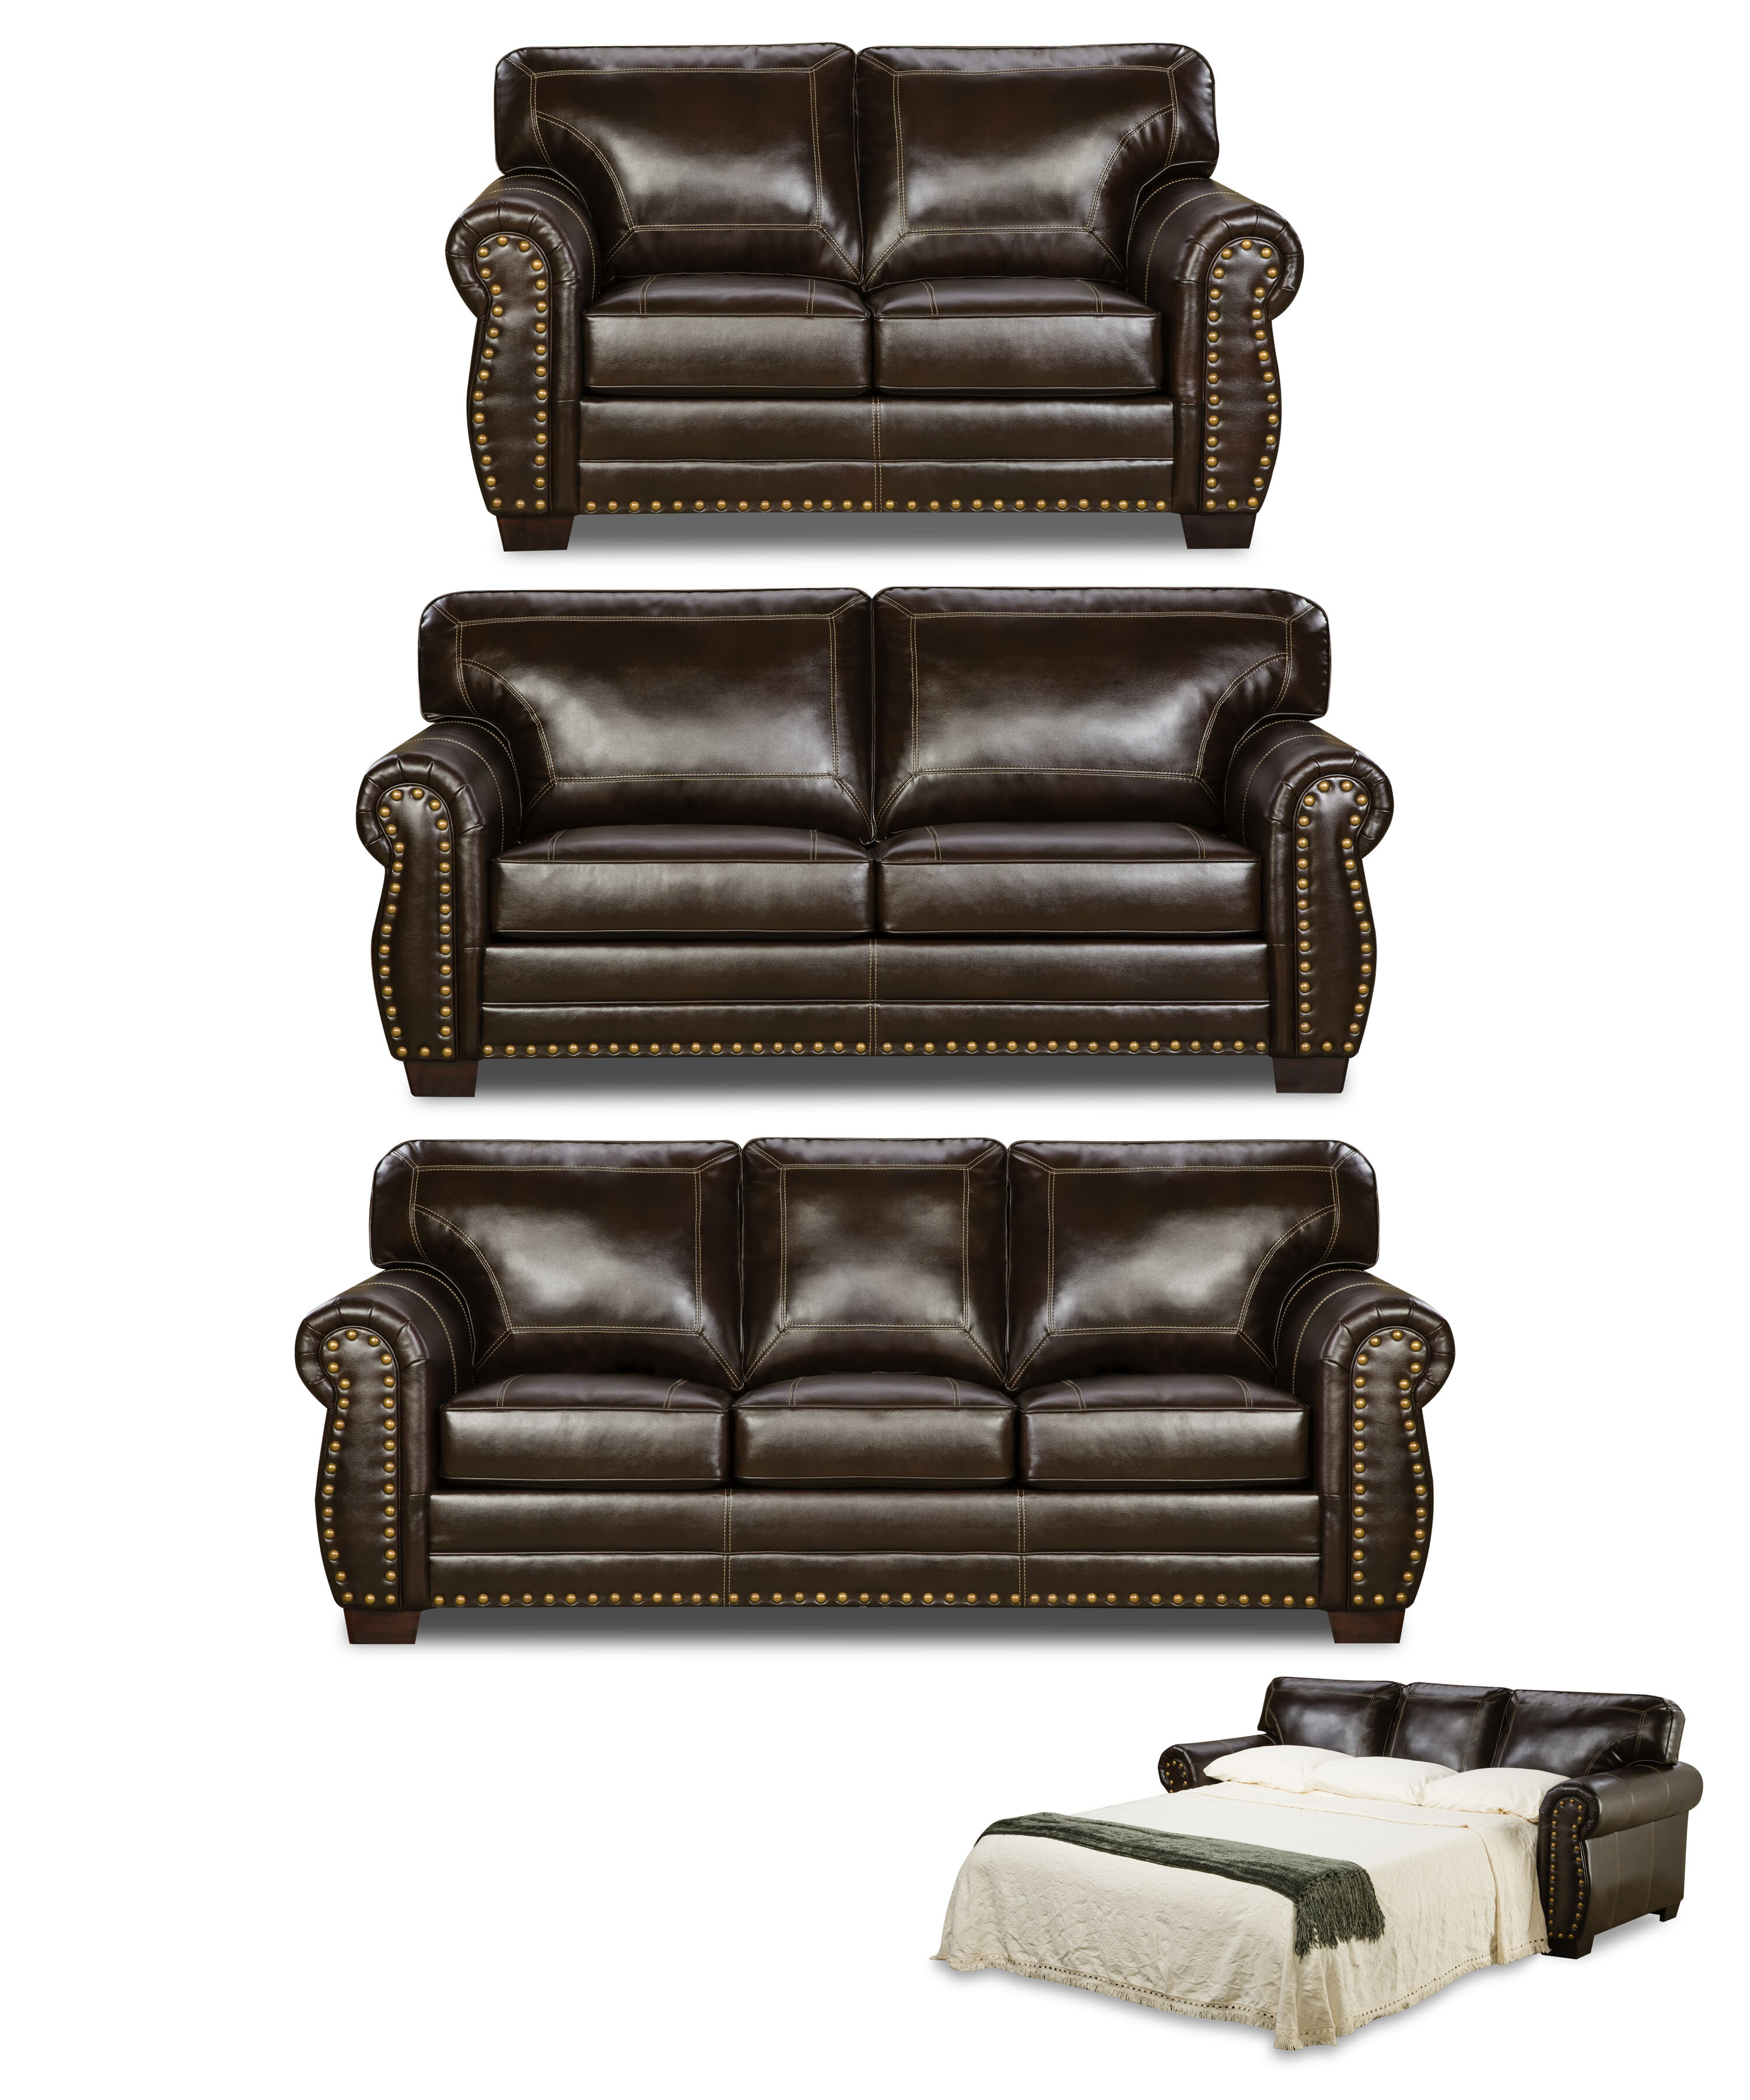 Fine Trafford Sleeper Configurable Living Room Set Unemploymentrelief Wooden Chair Designs For Living Room Unemploymentrelieforg